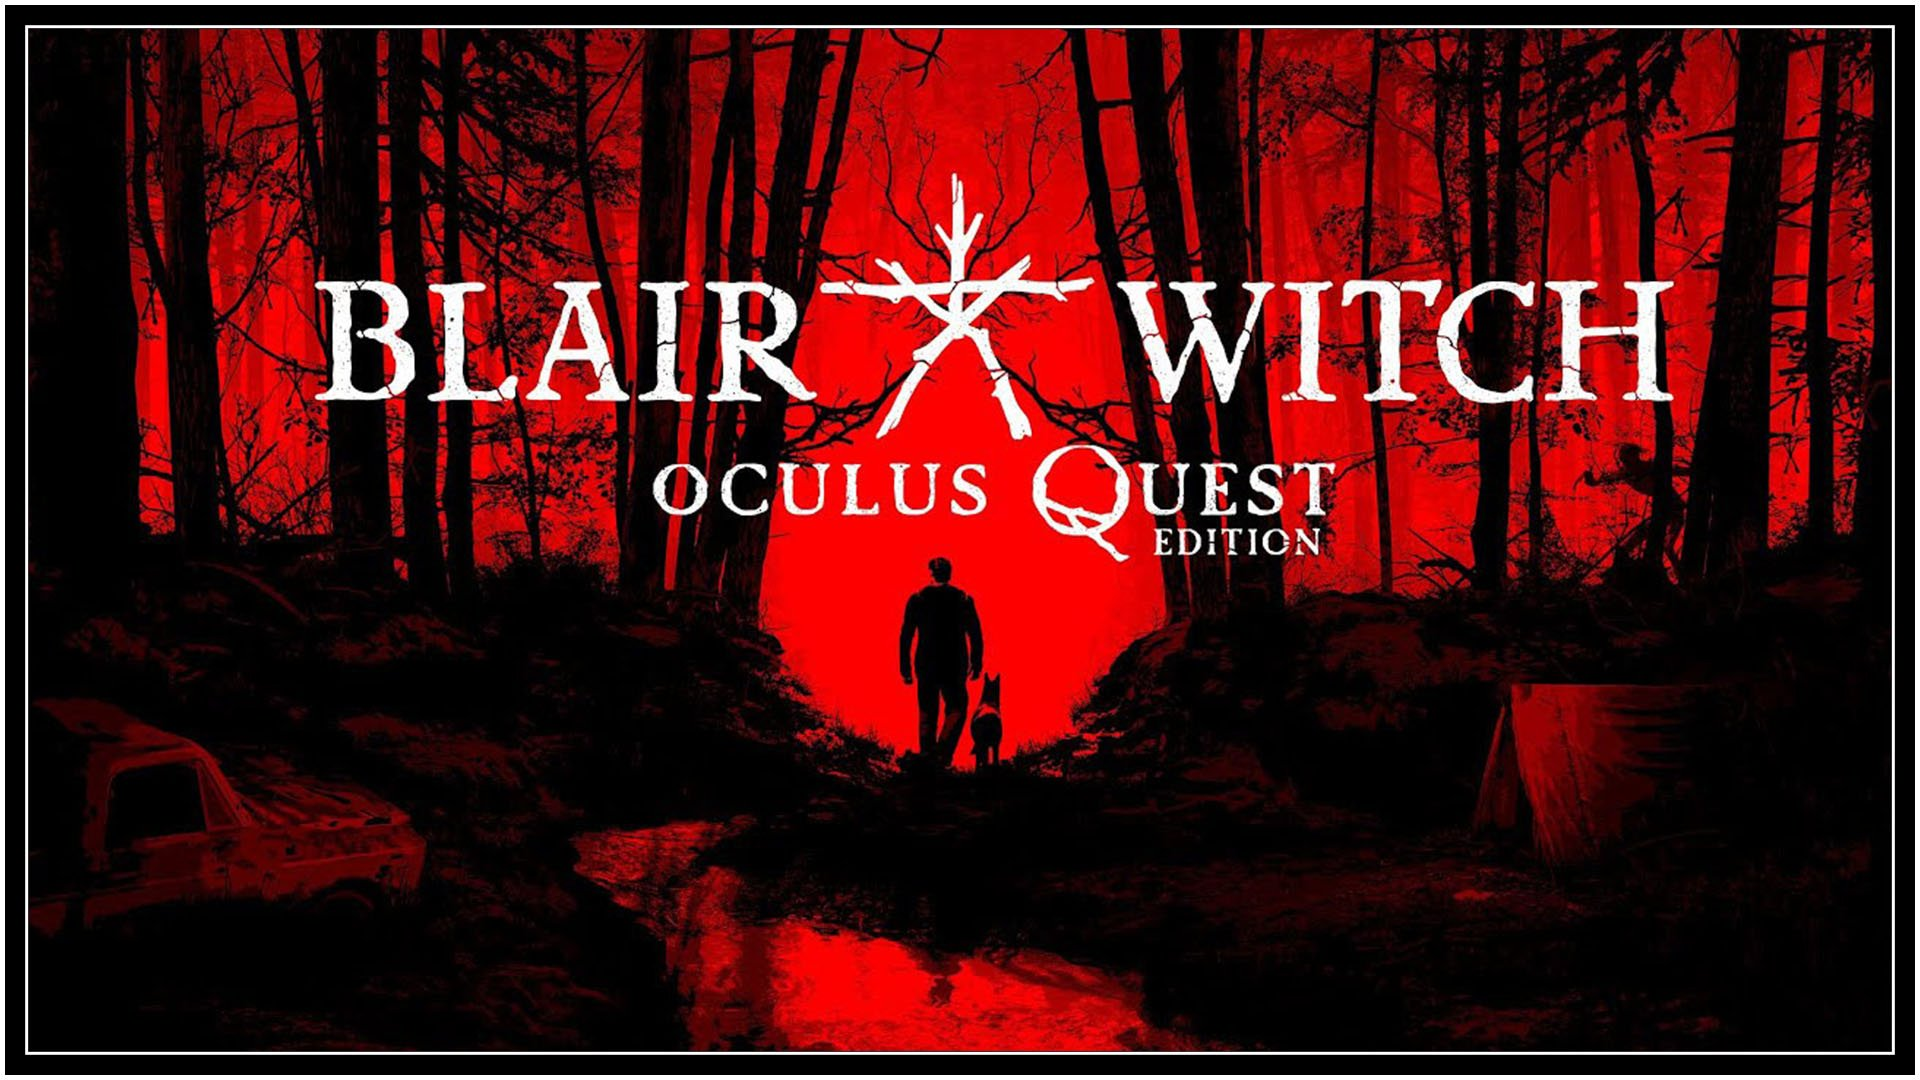 Blair Witch: Oculus Quest Edition (Oculus Quest 2) Review